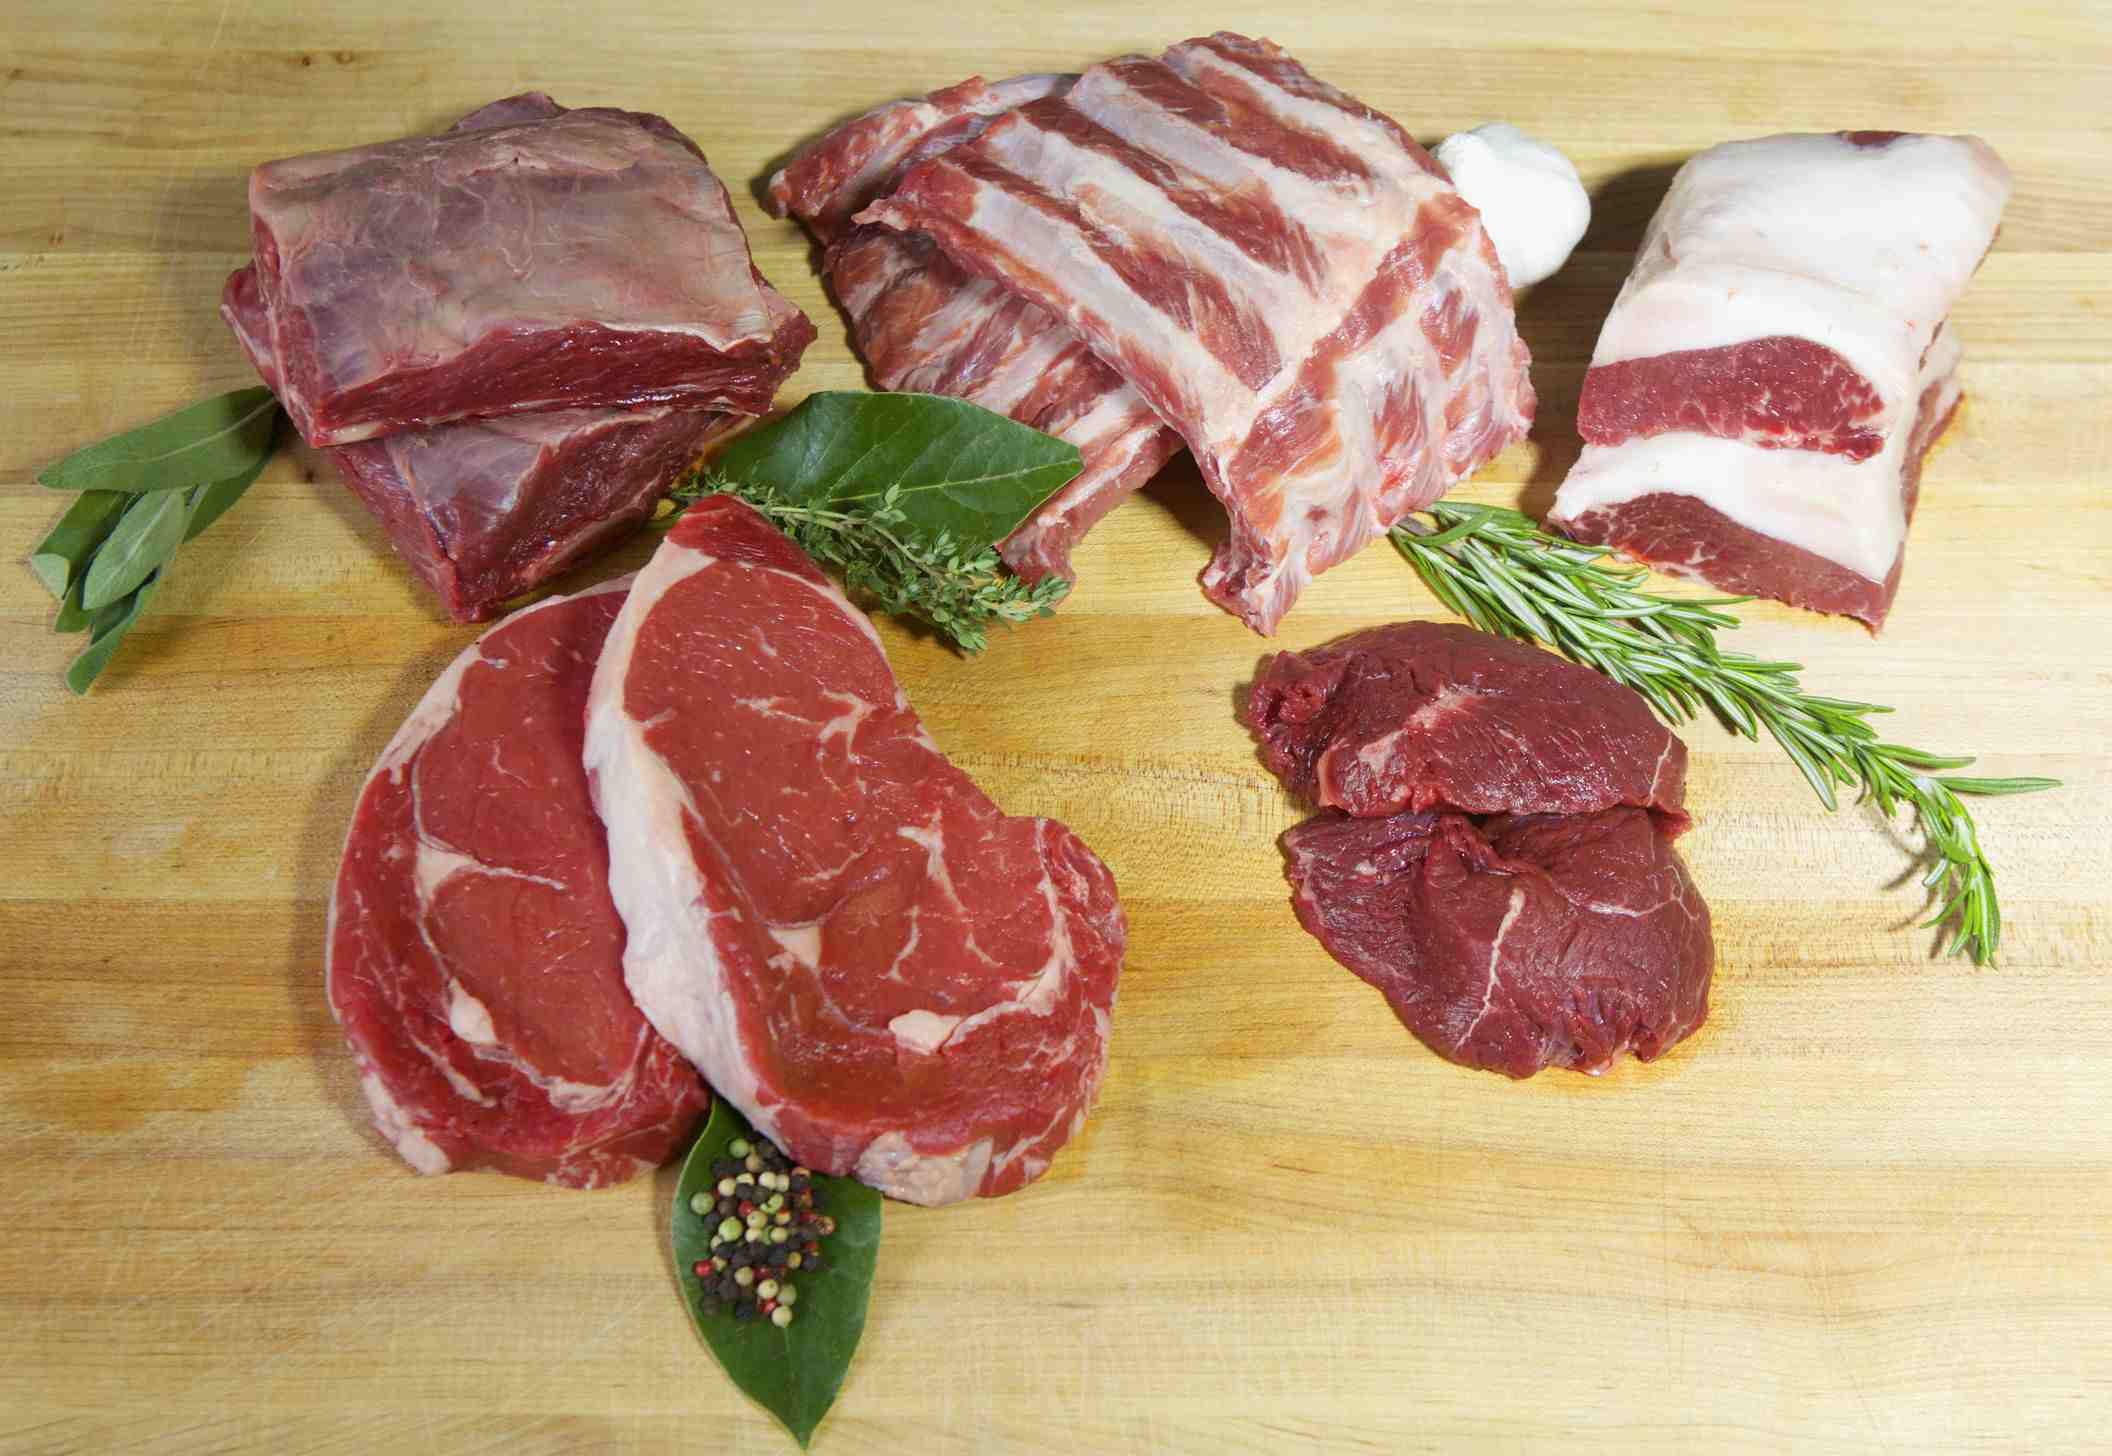 Fossil Farm's Meat Lover's Pack